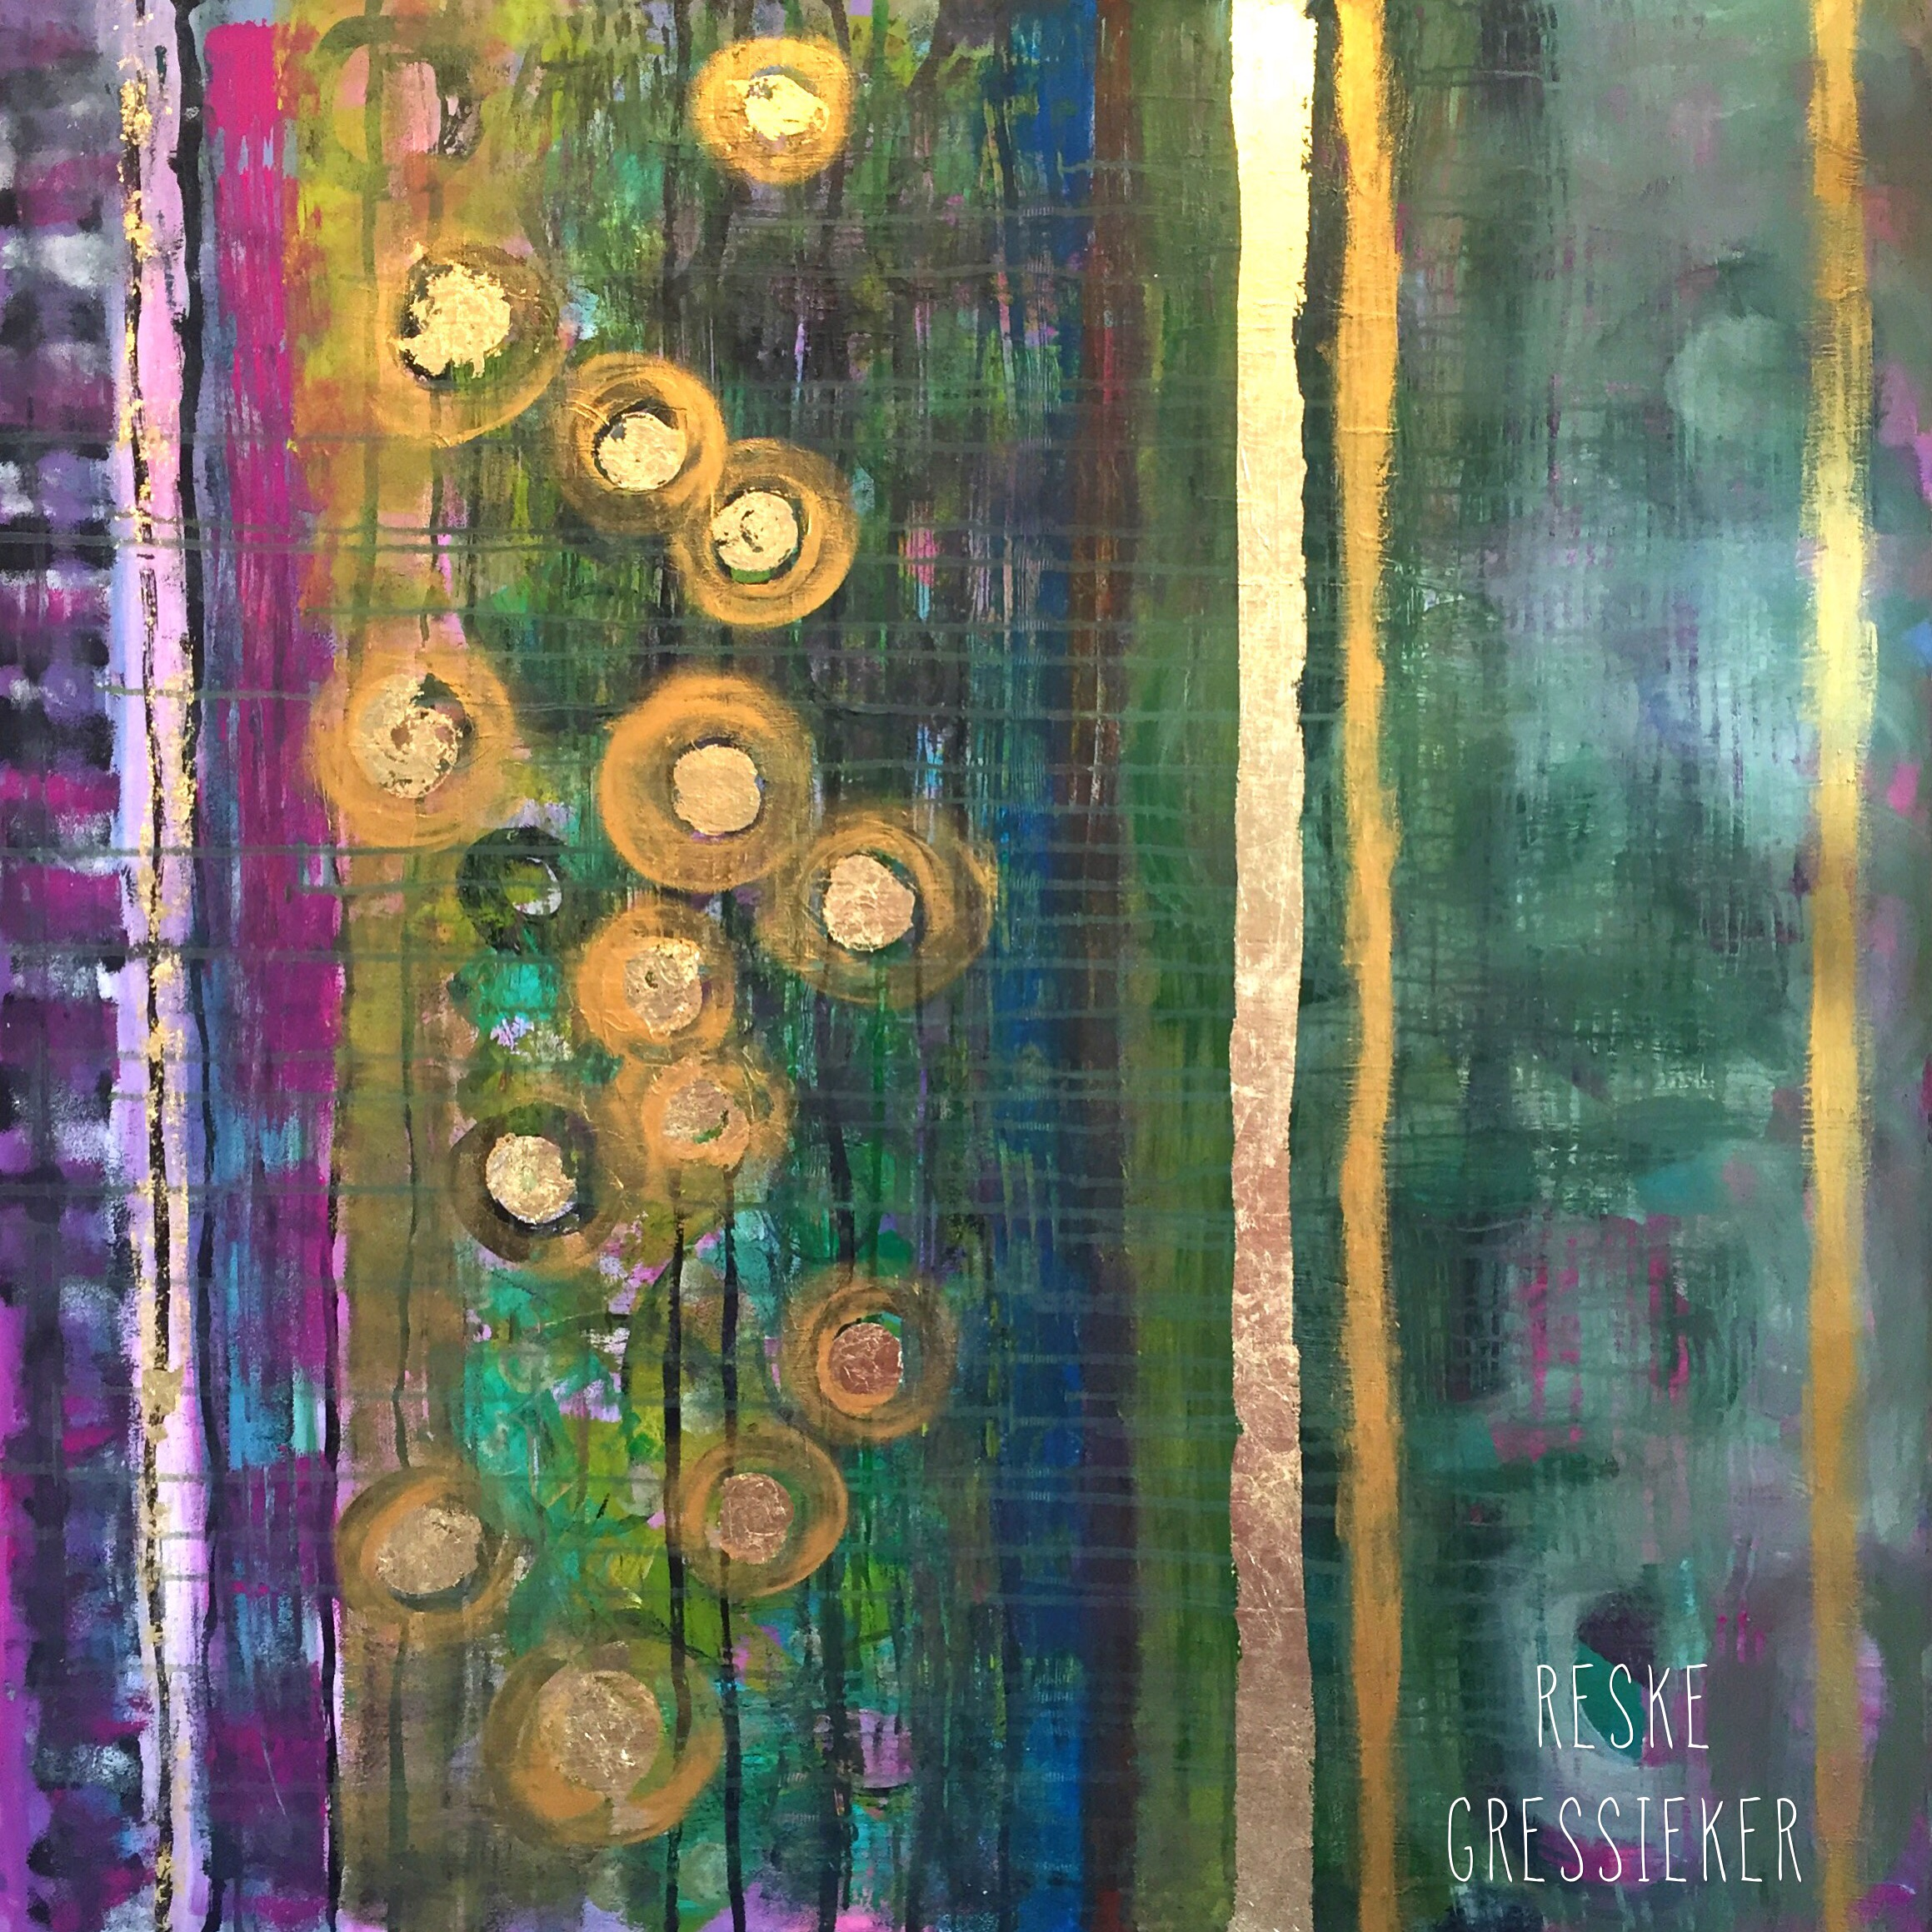 delights 100x100cm, collaboration with Doris Reske